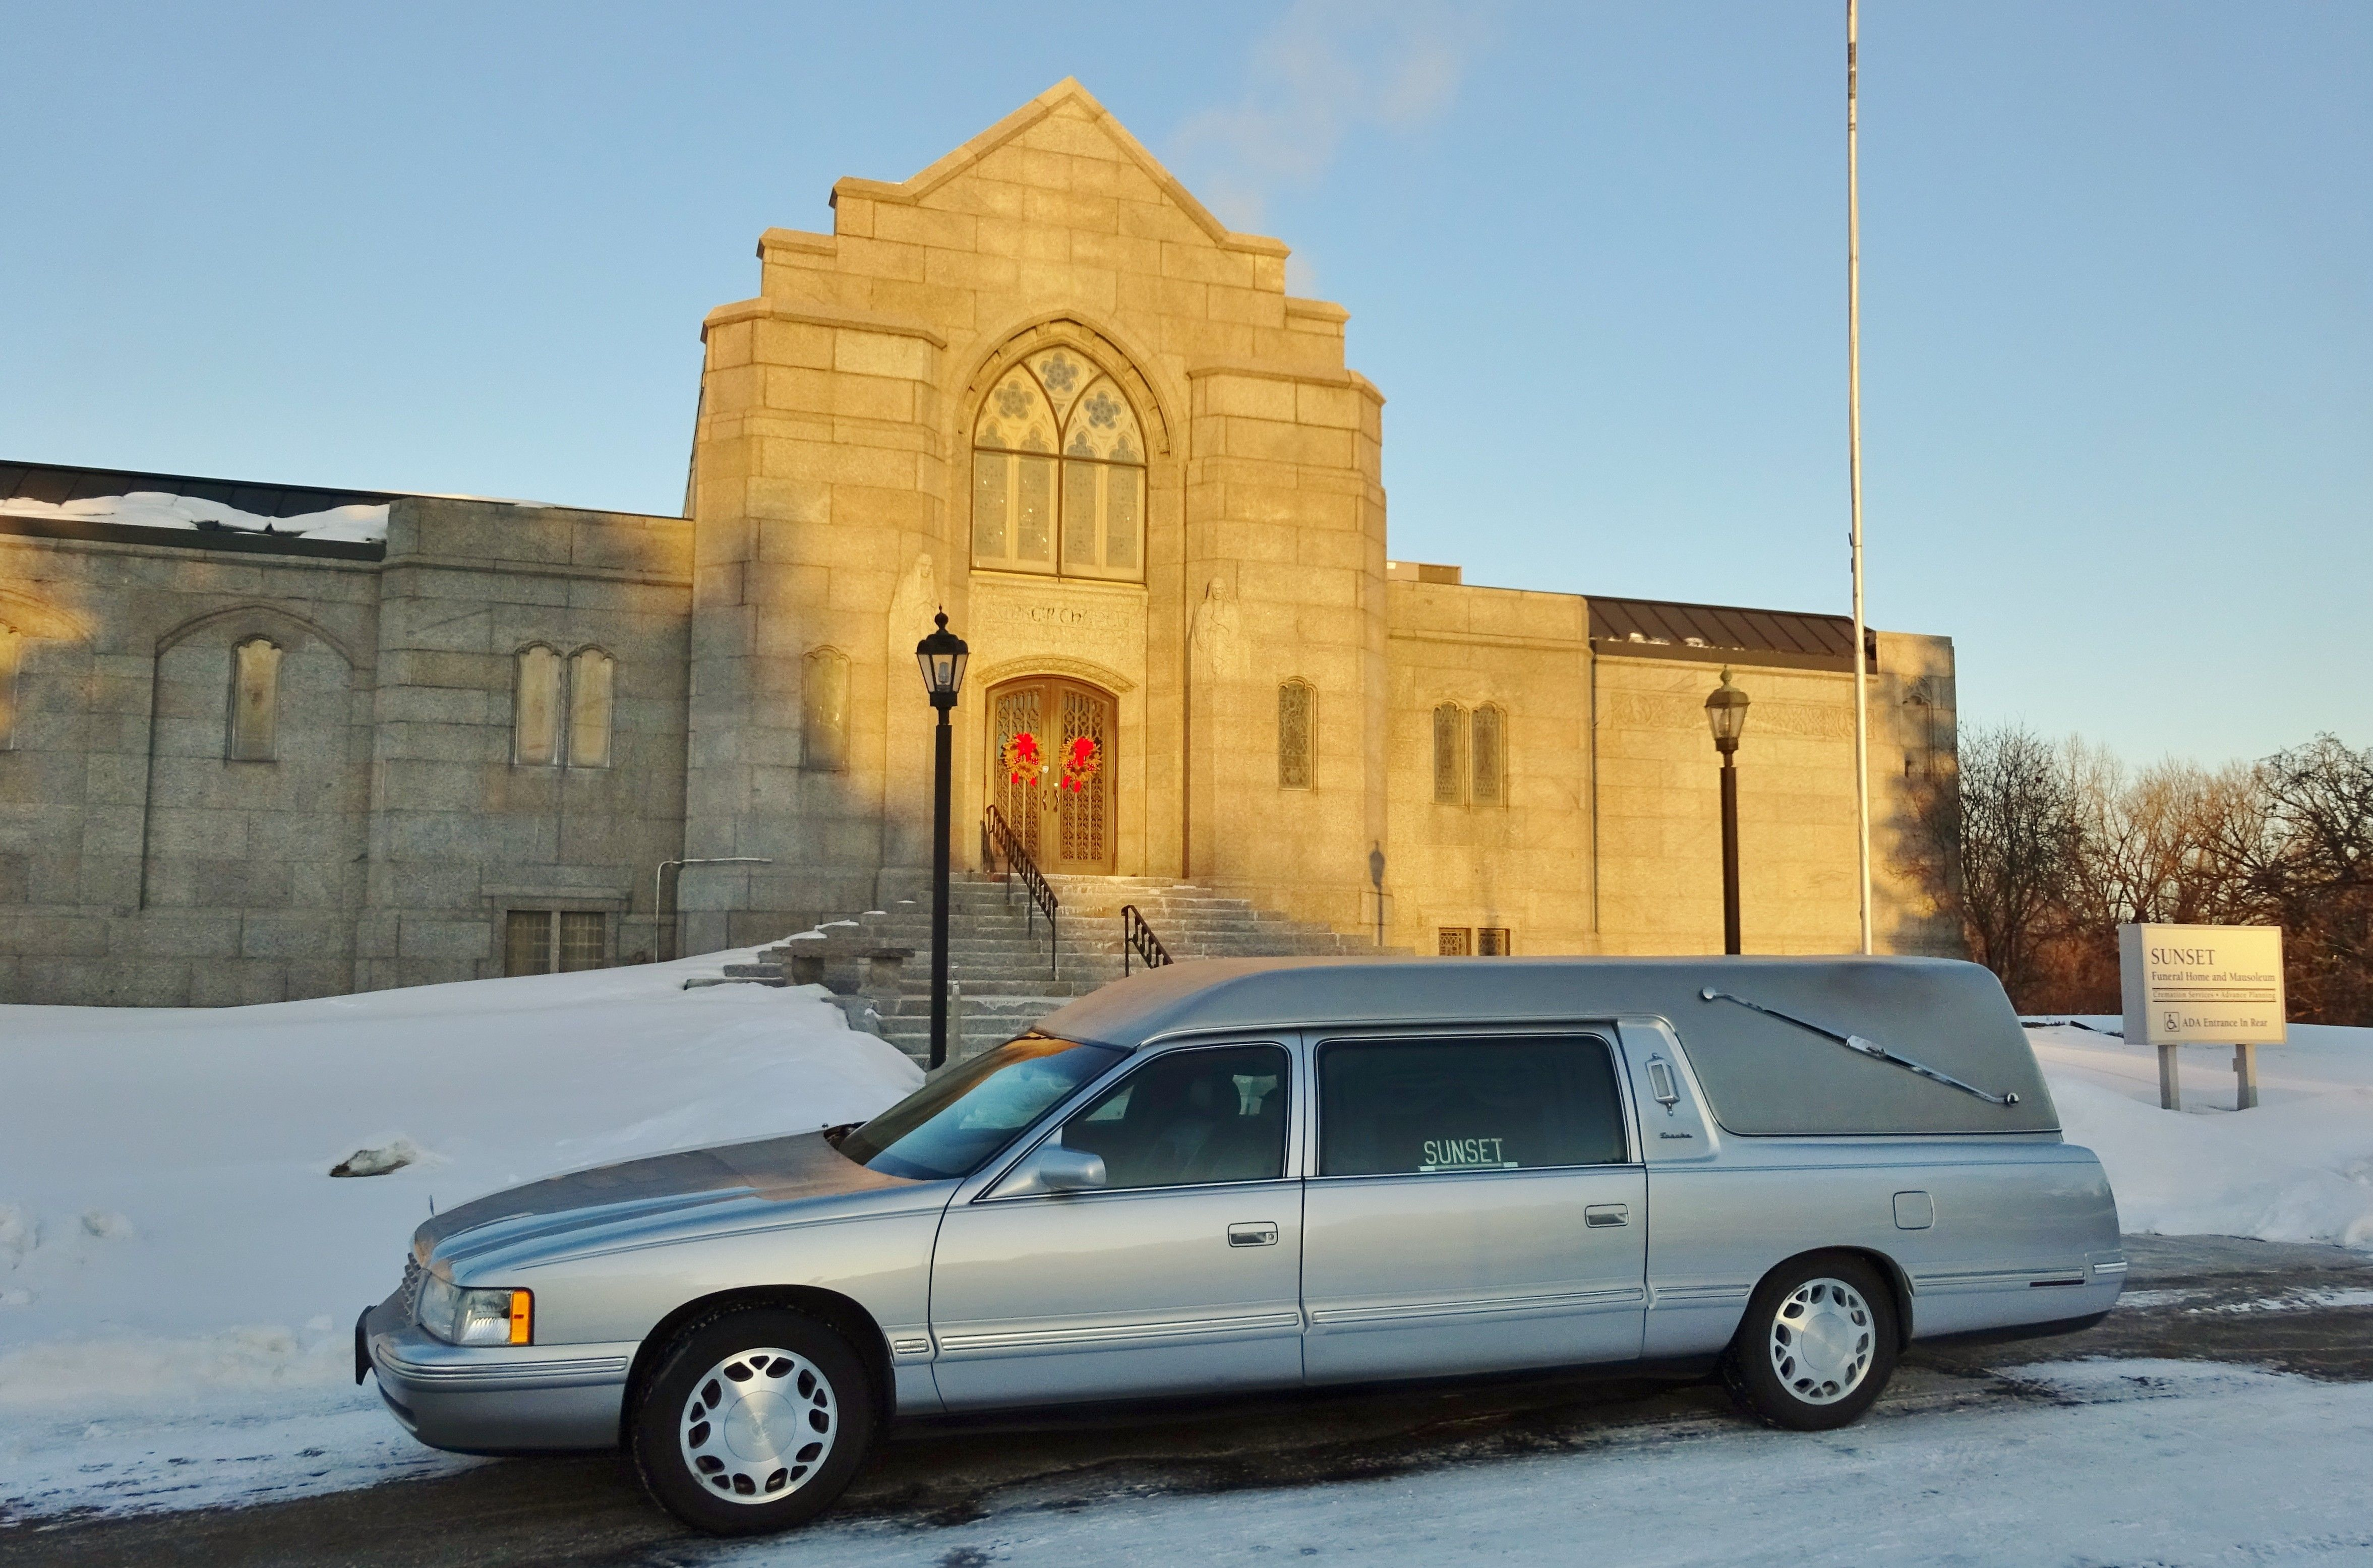 Obituary Of Stephen Christopher Randel Funeral Homes Estes funeral chapel 2201 plymouth ave n minneapolis mn 55411.